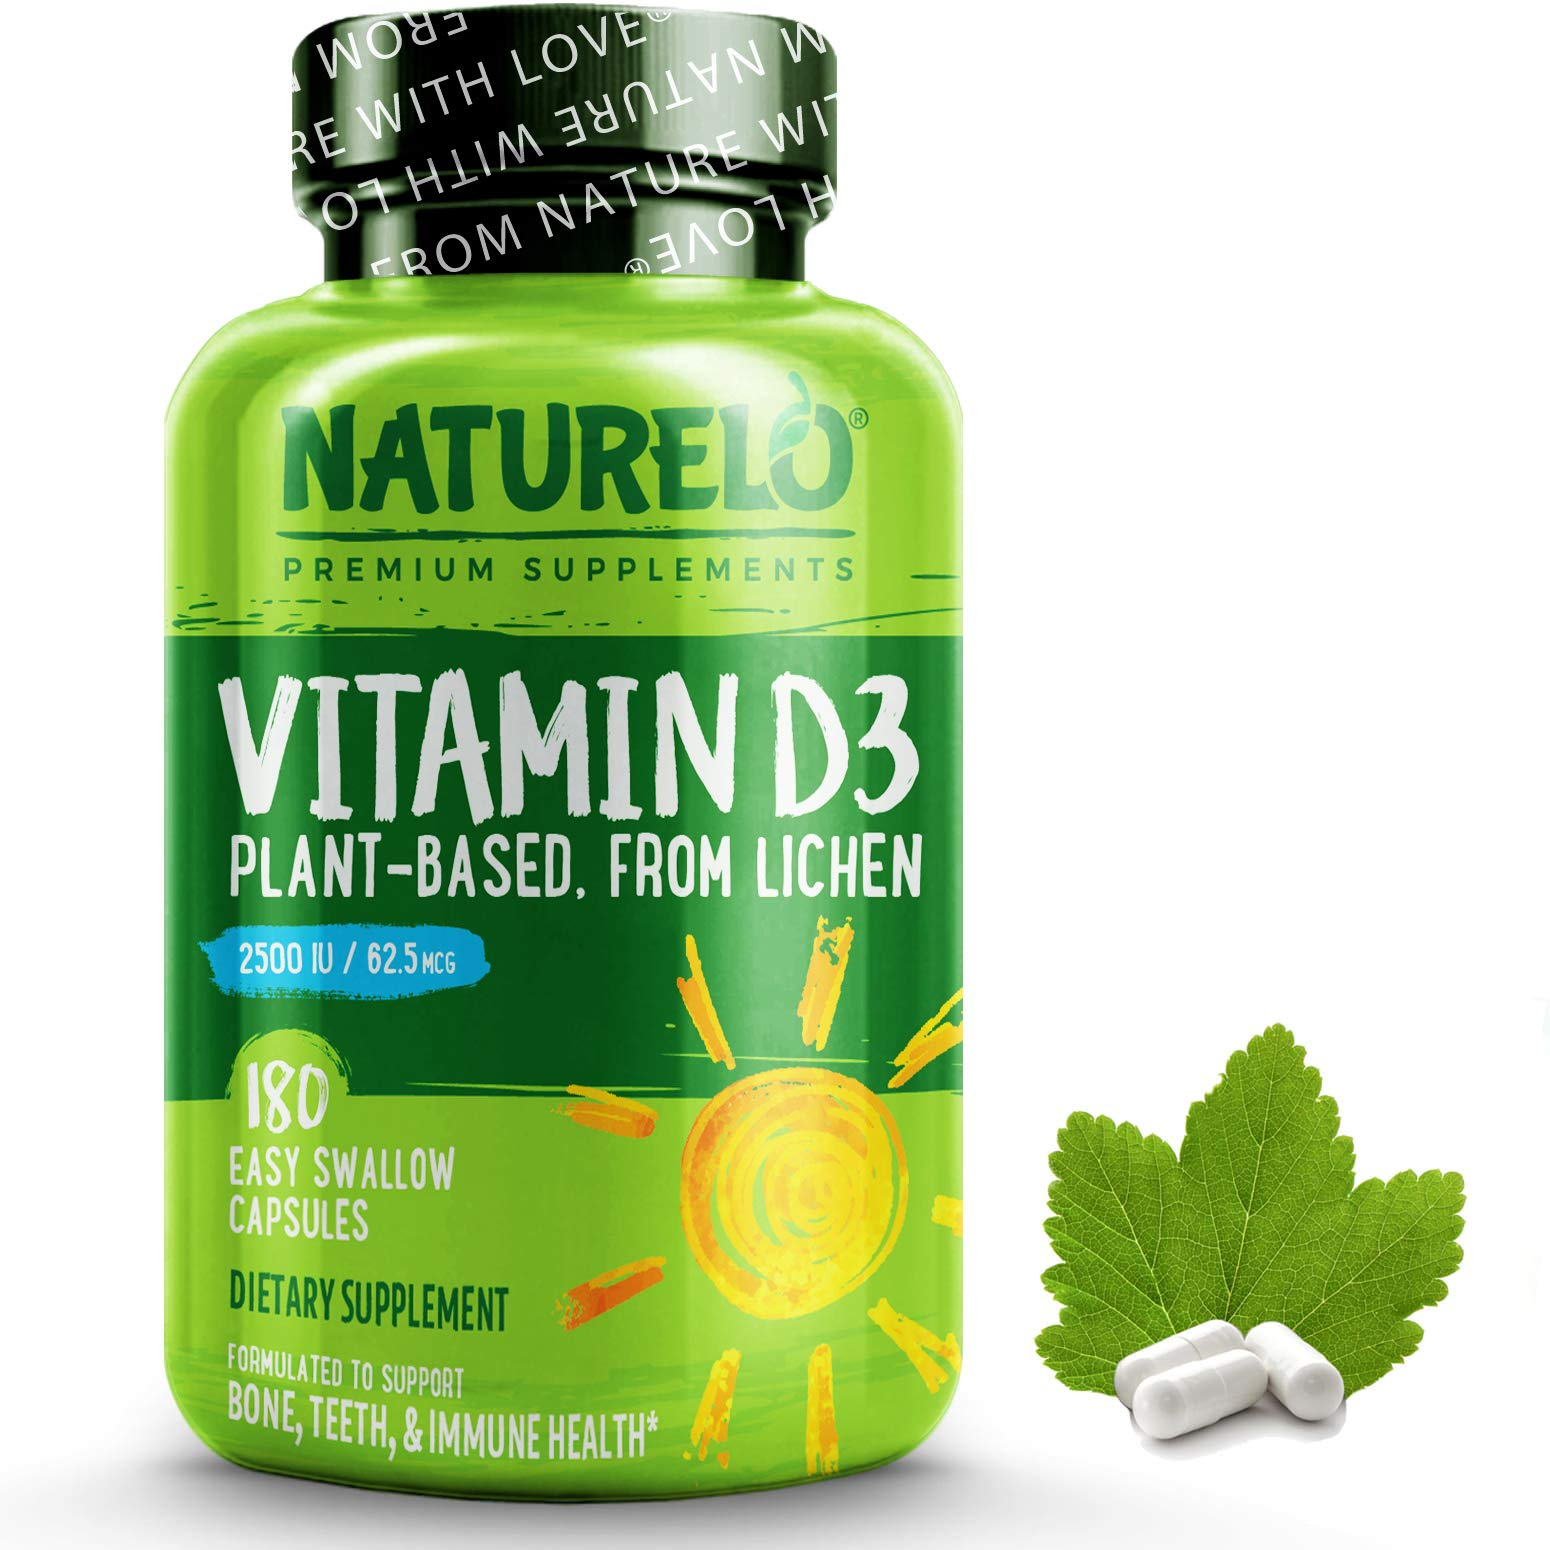 NATURELO Vitamin D - 2500 IU (62.5mcg) - Plant Based from Lichen - Natural D3 Supplement for Immune System, Bone Support, Joint Health - Non-GMO Gluten-Free - 180 Vegan Mini Capsules   6 Month Supply